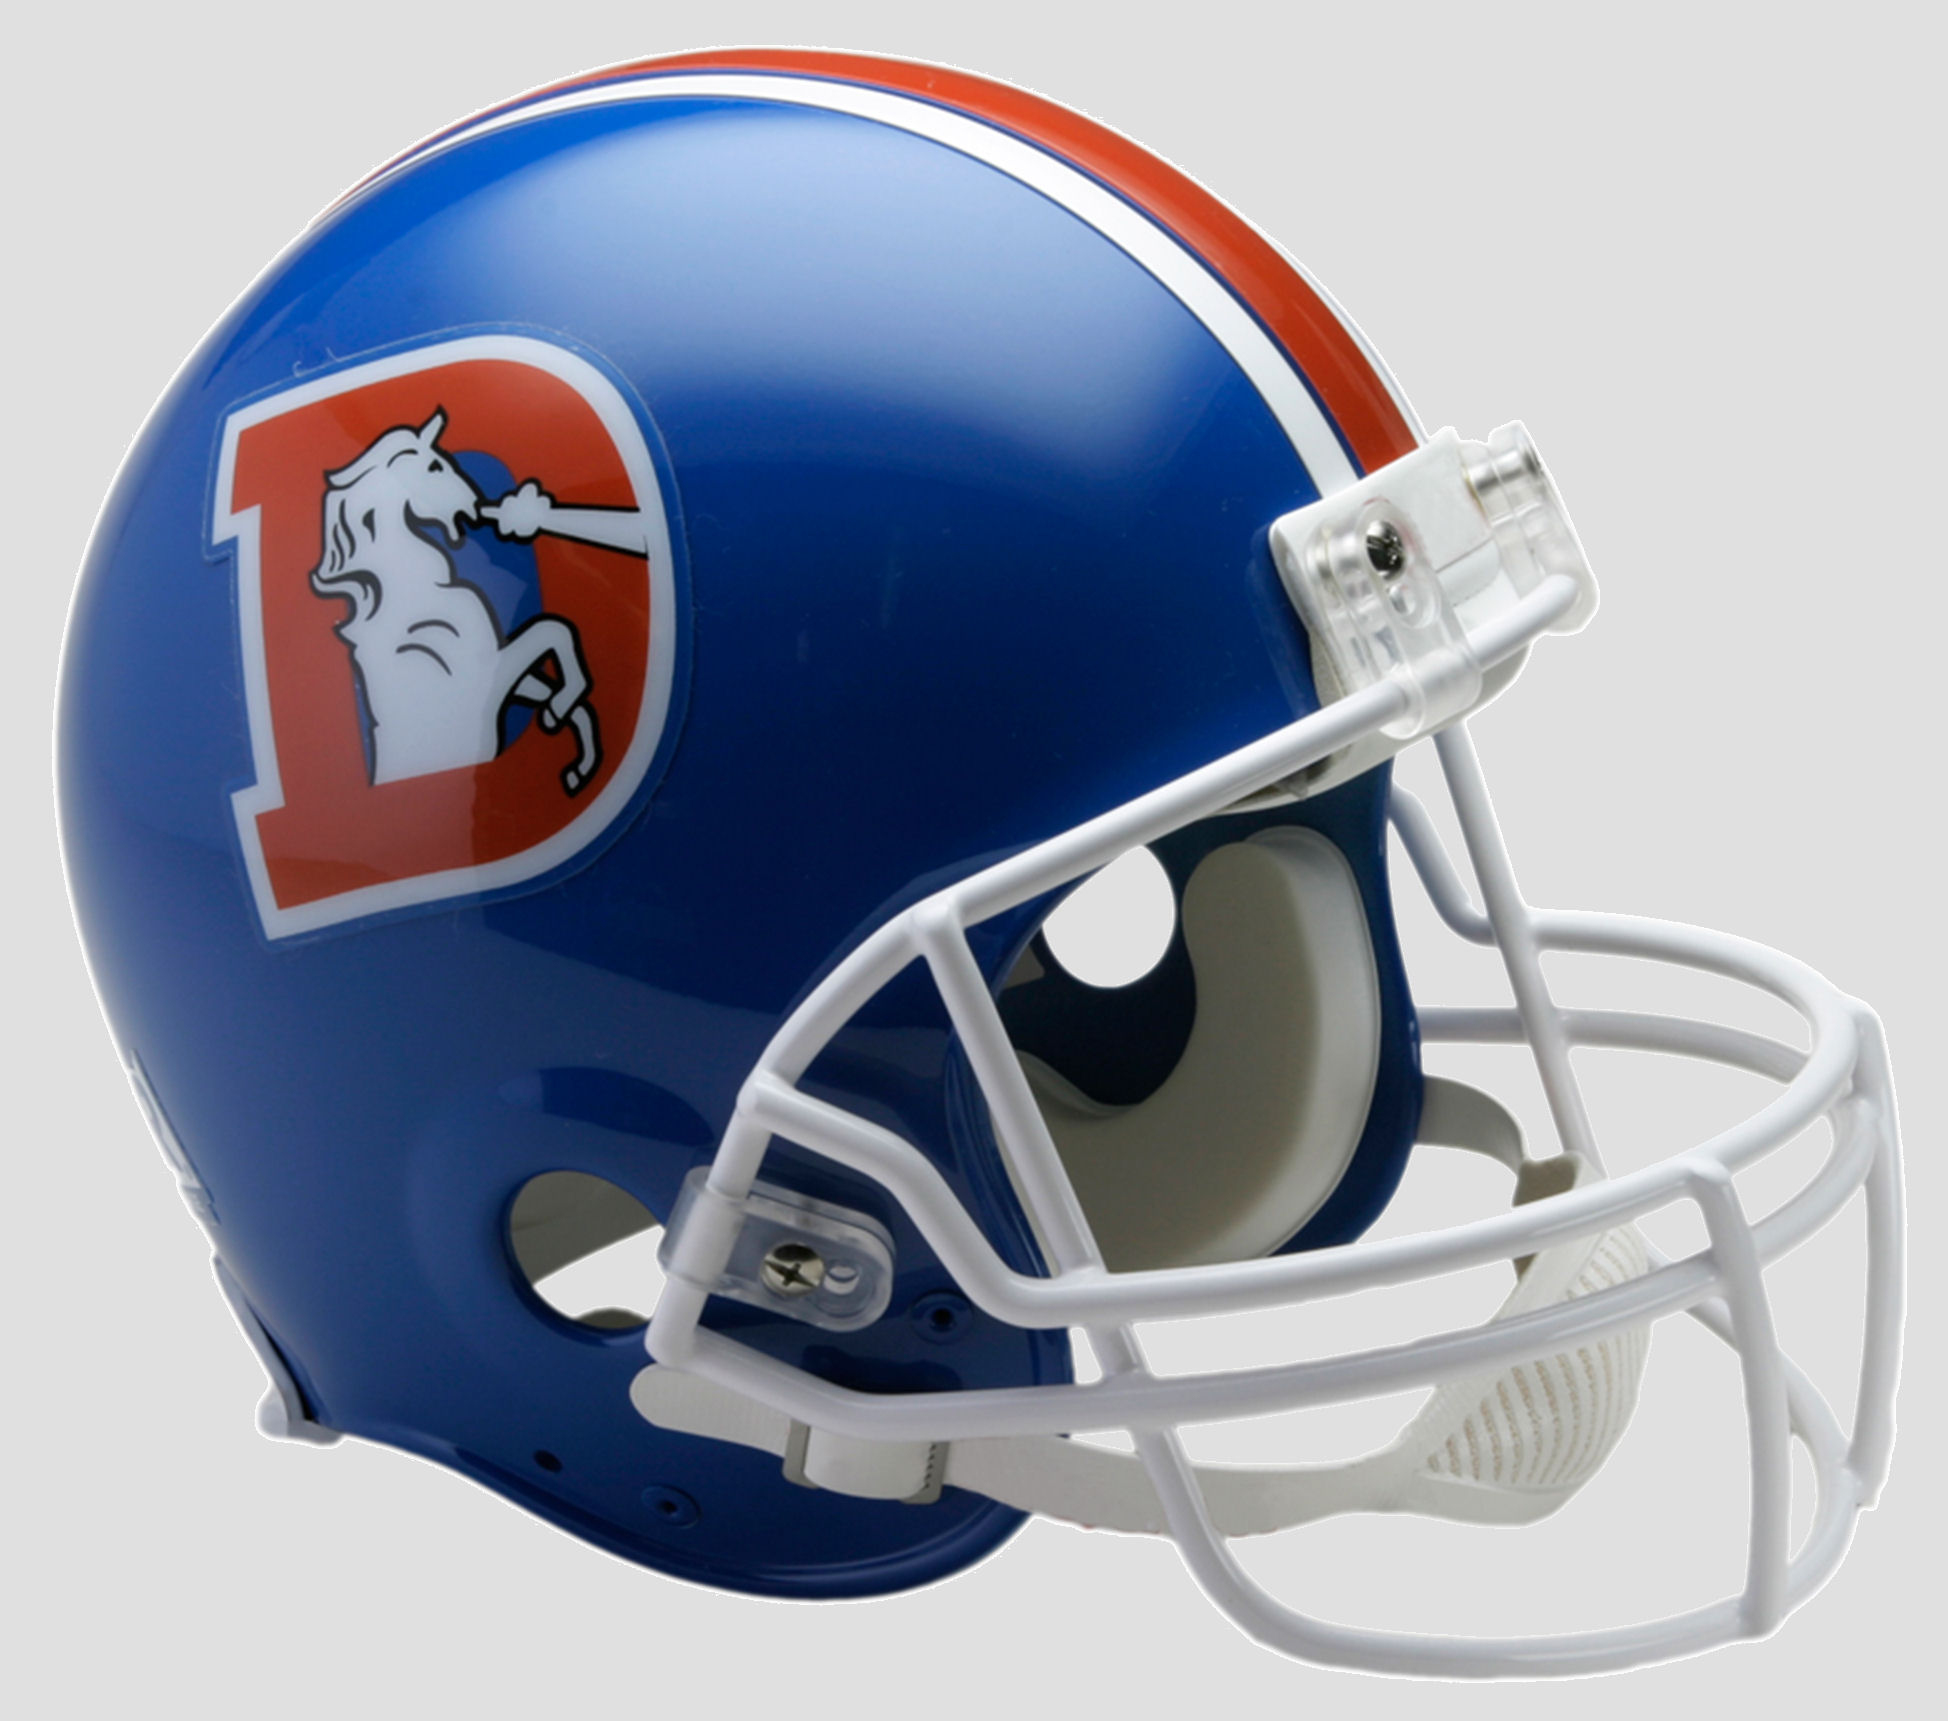 Denver Broncos 1975 to 1996 Football Helmet